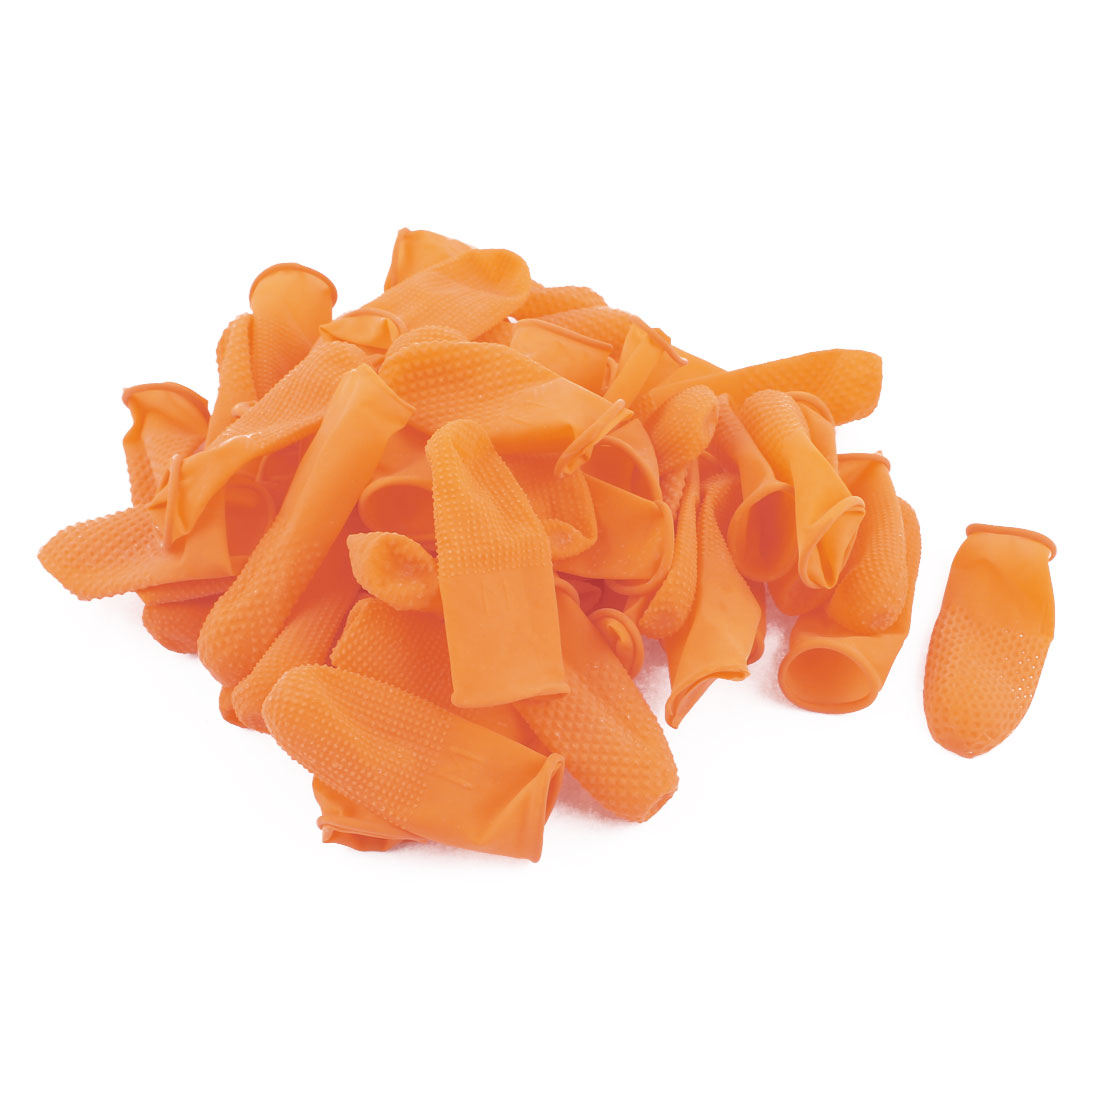 100pcs Antislip Fingertips Gloves Latex Rubber Finger Cots Antistatic Gloves Orange